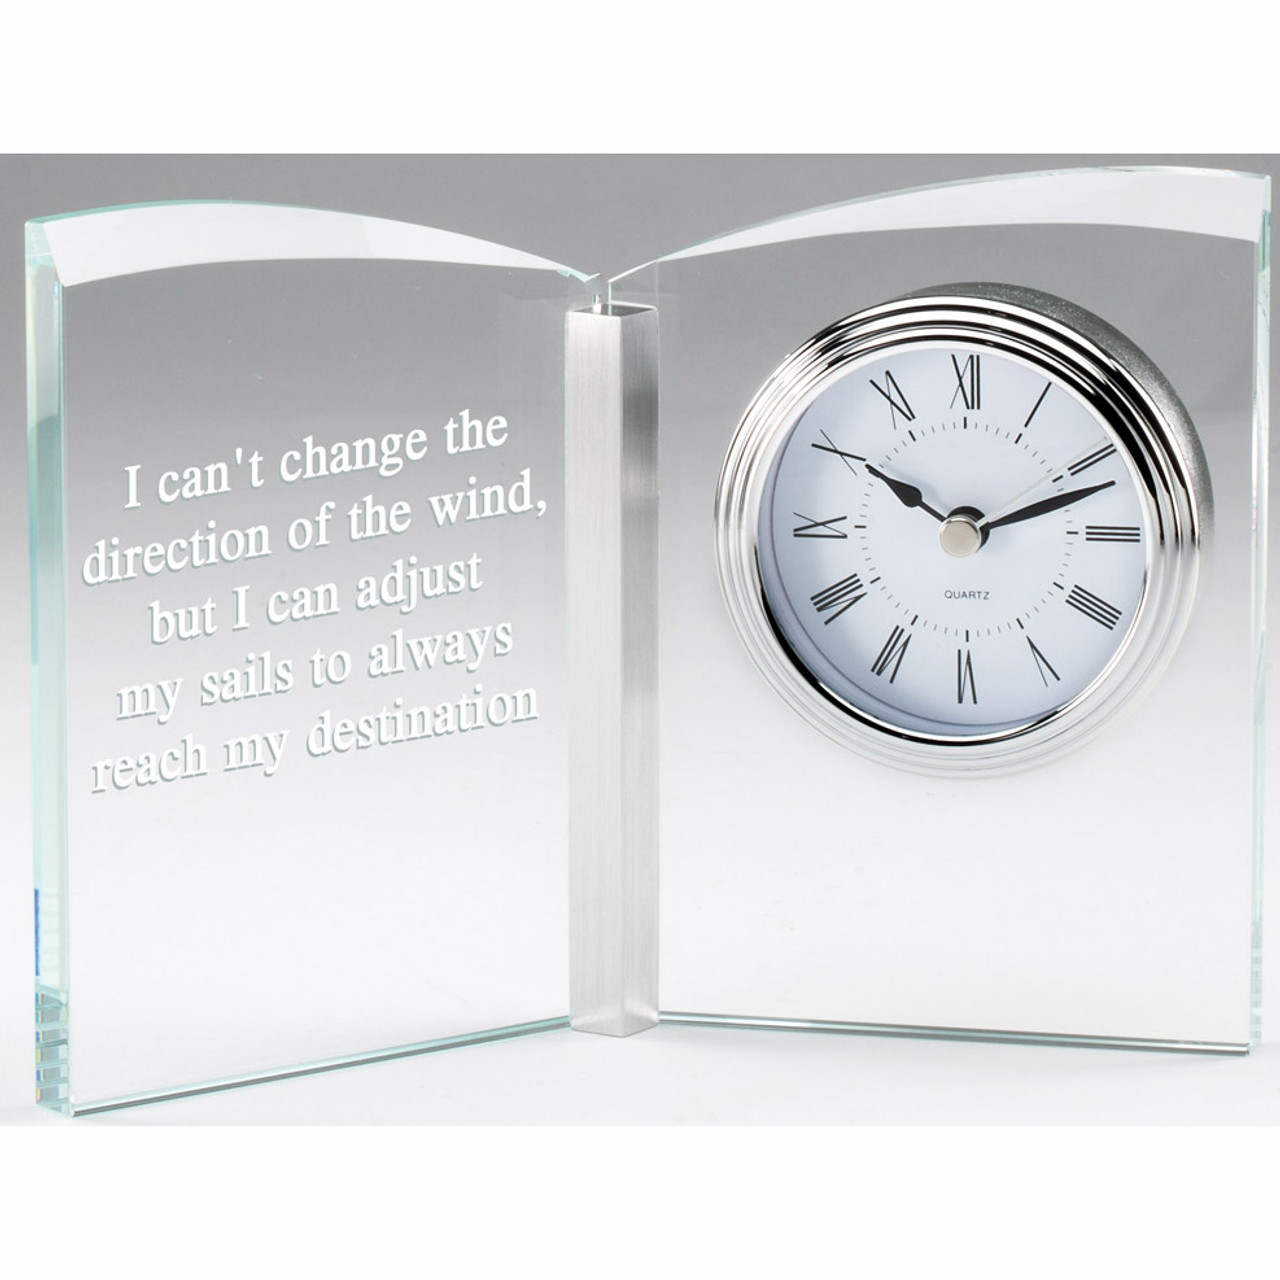 Clear glass book award with clock